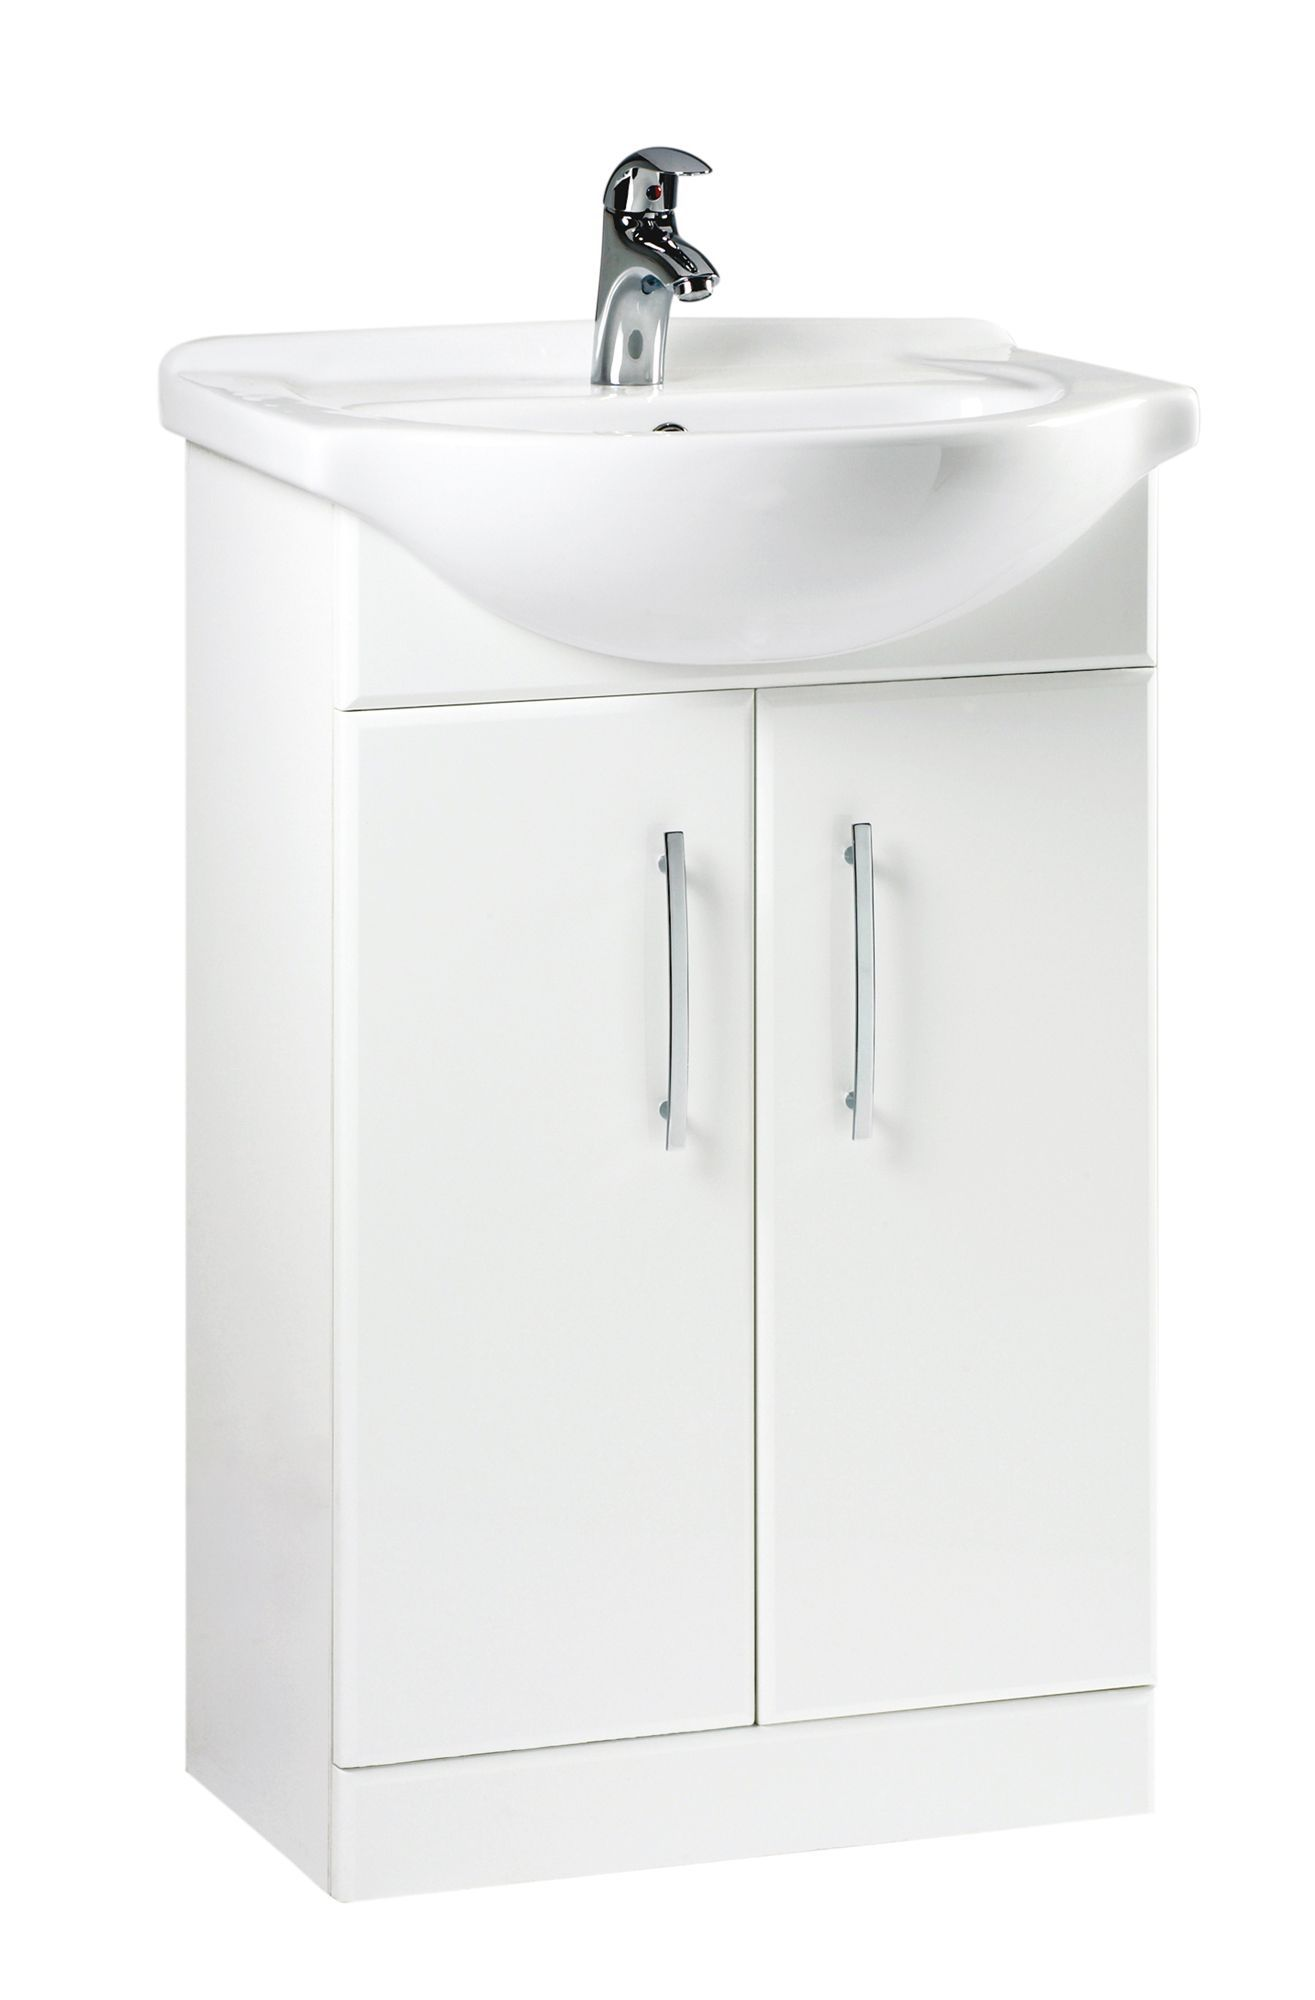 B q white vanity unit basin departments diy at b q for B q bathroom accessories